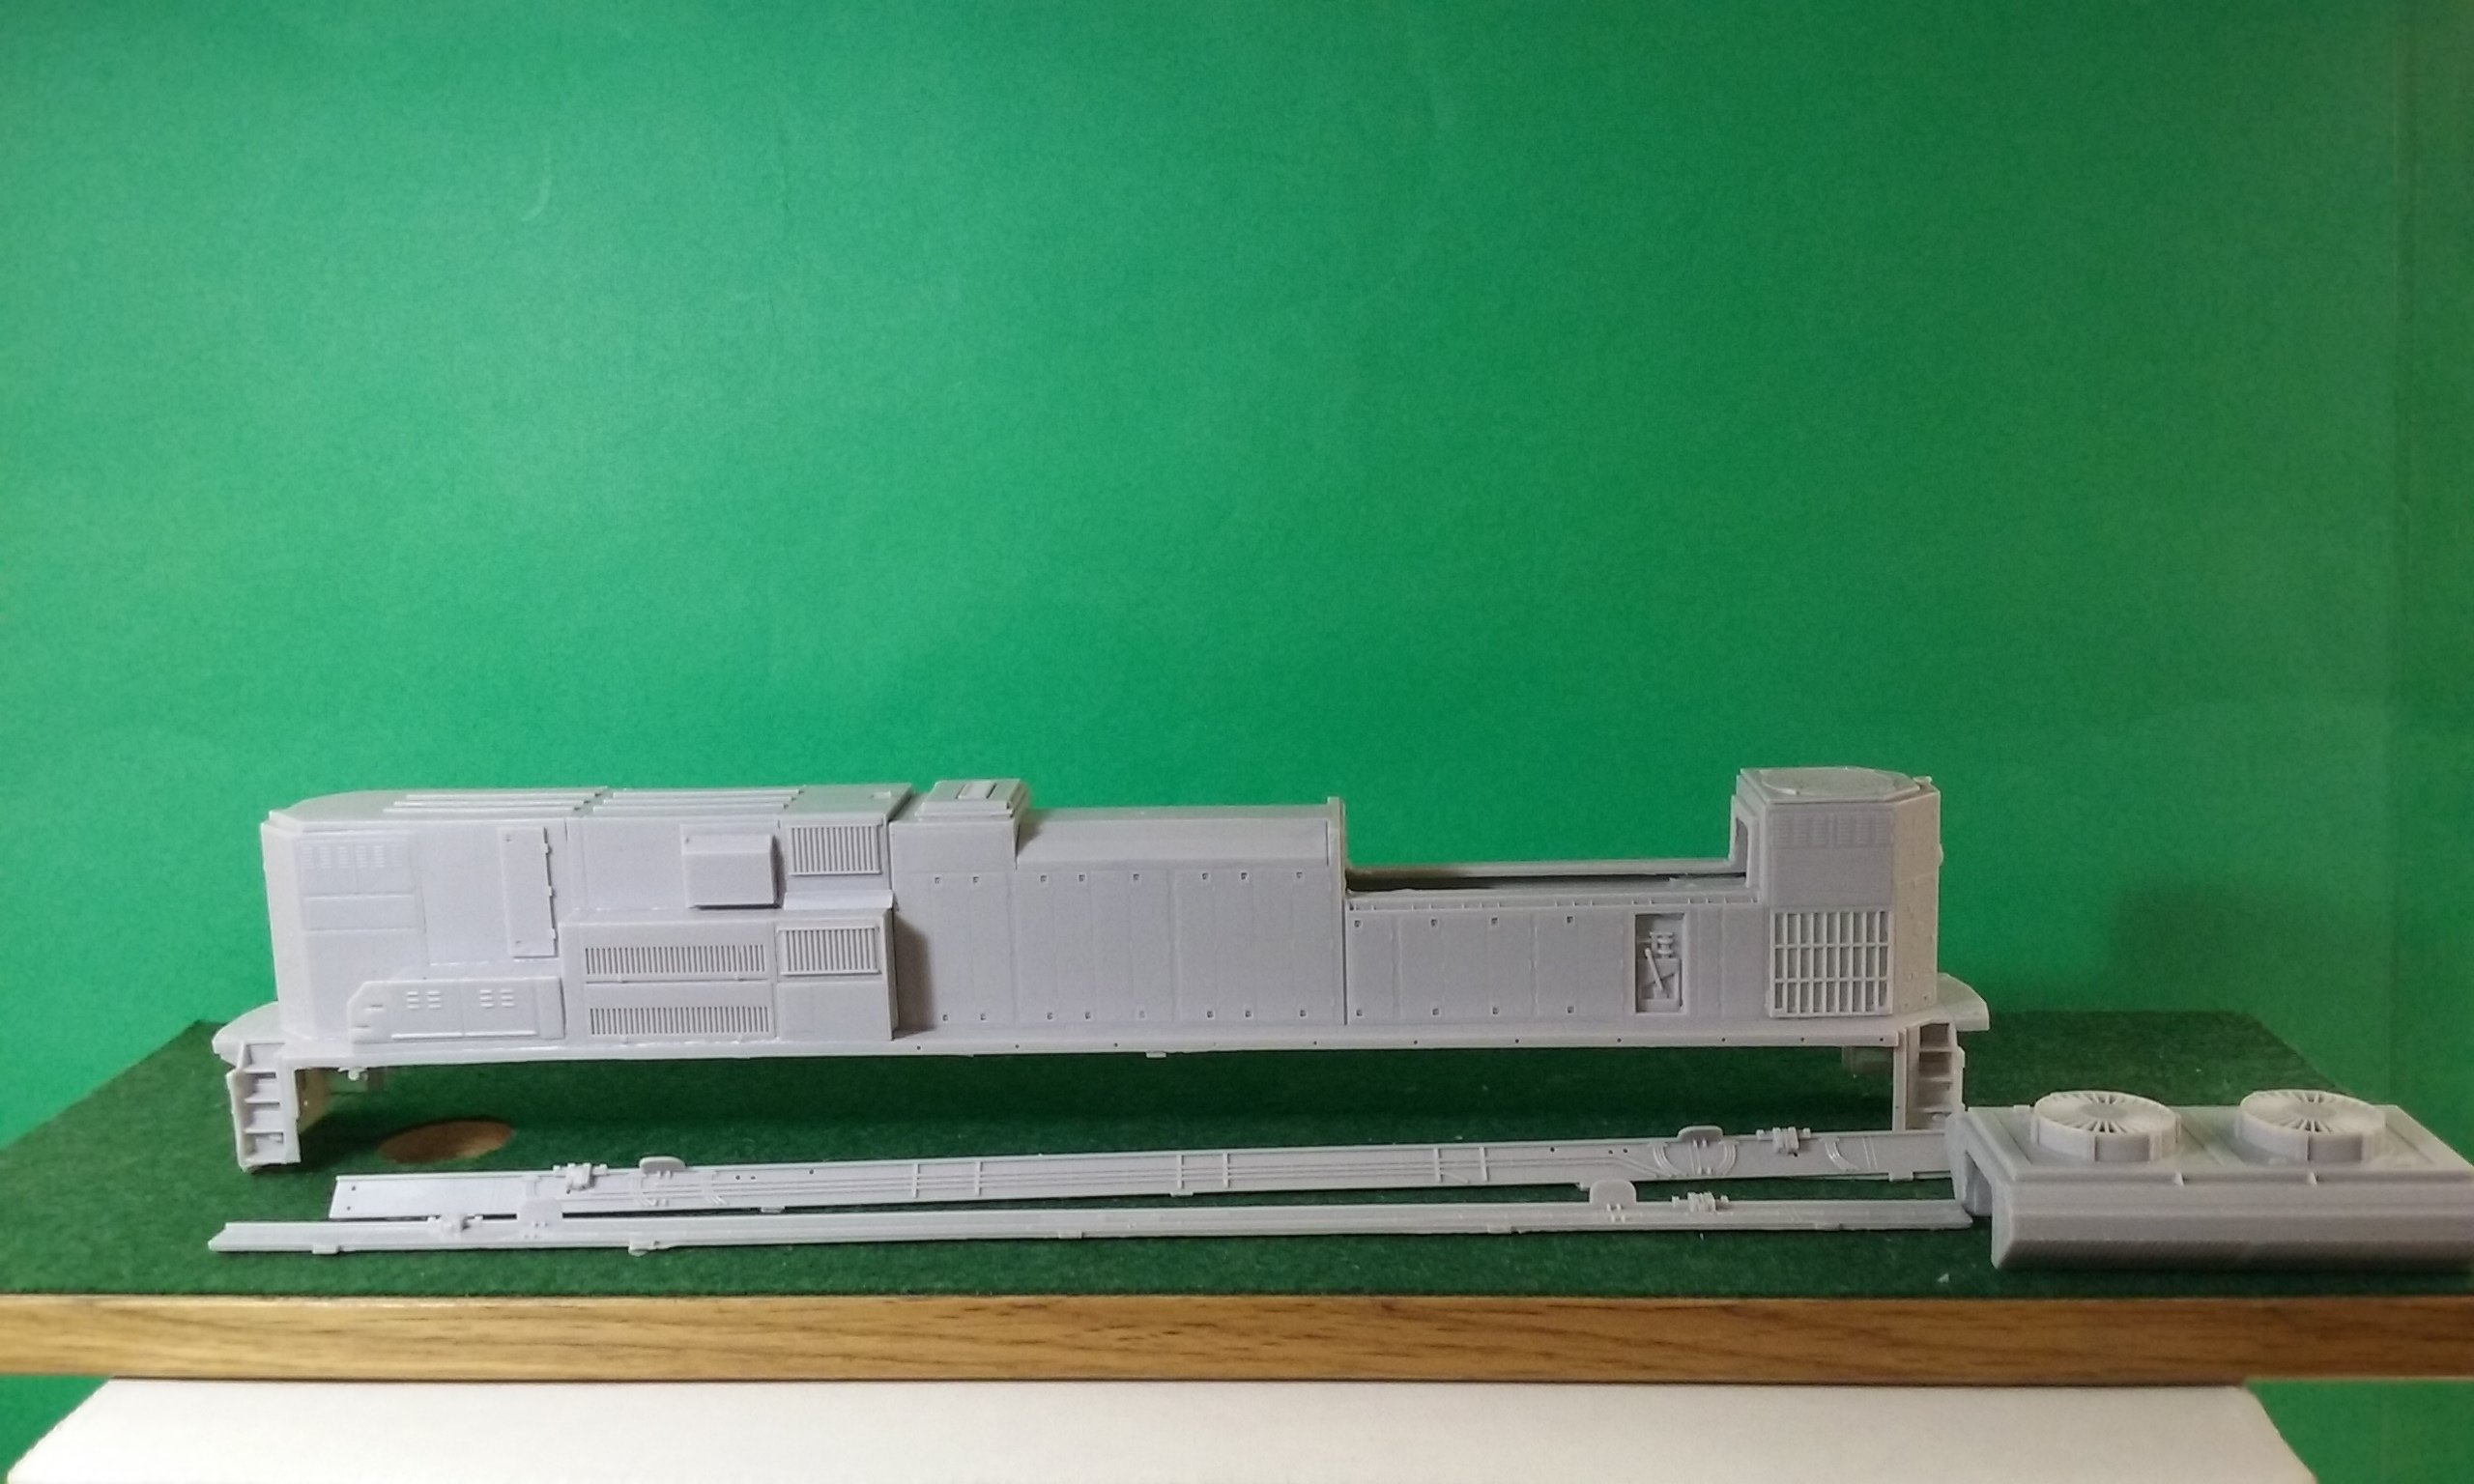 HO Scale SD70 ACE B Unit, HO Scale Trains, by Pacific Northwest Resin